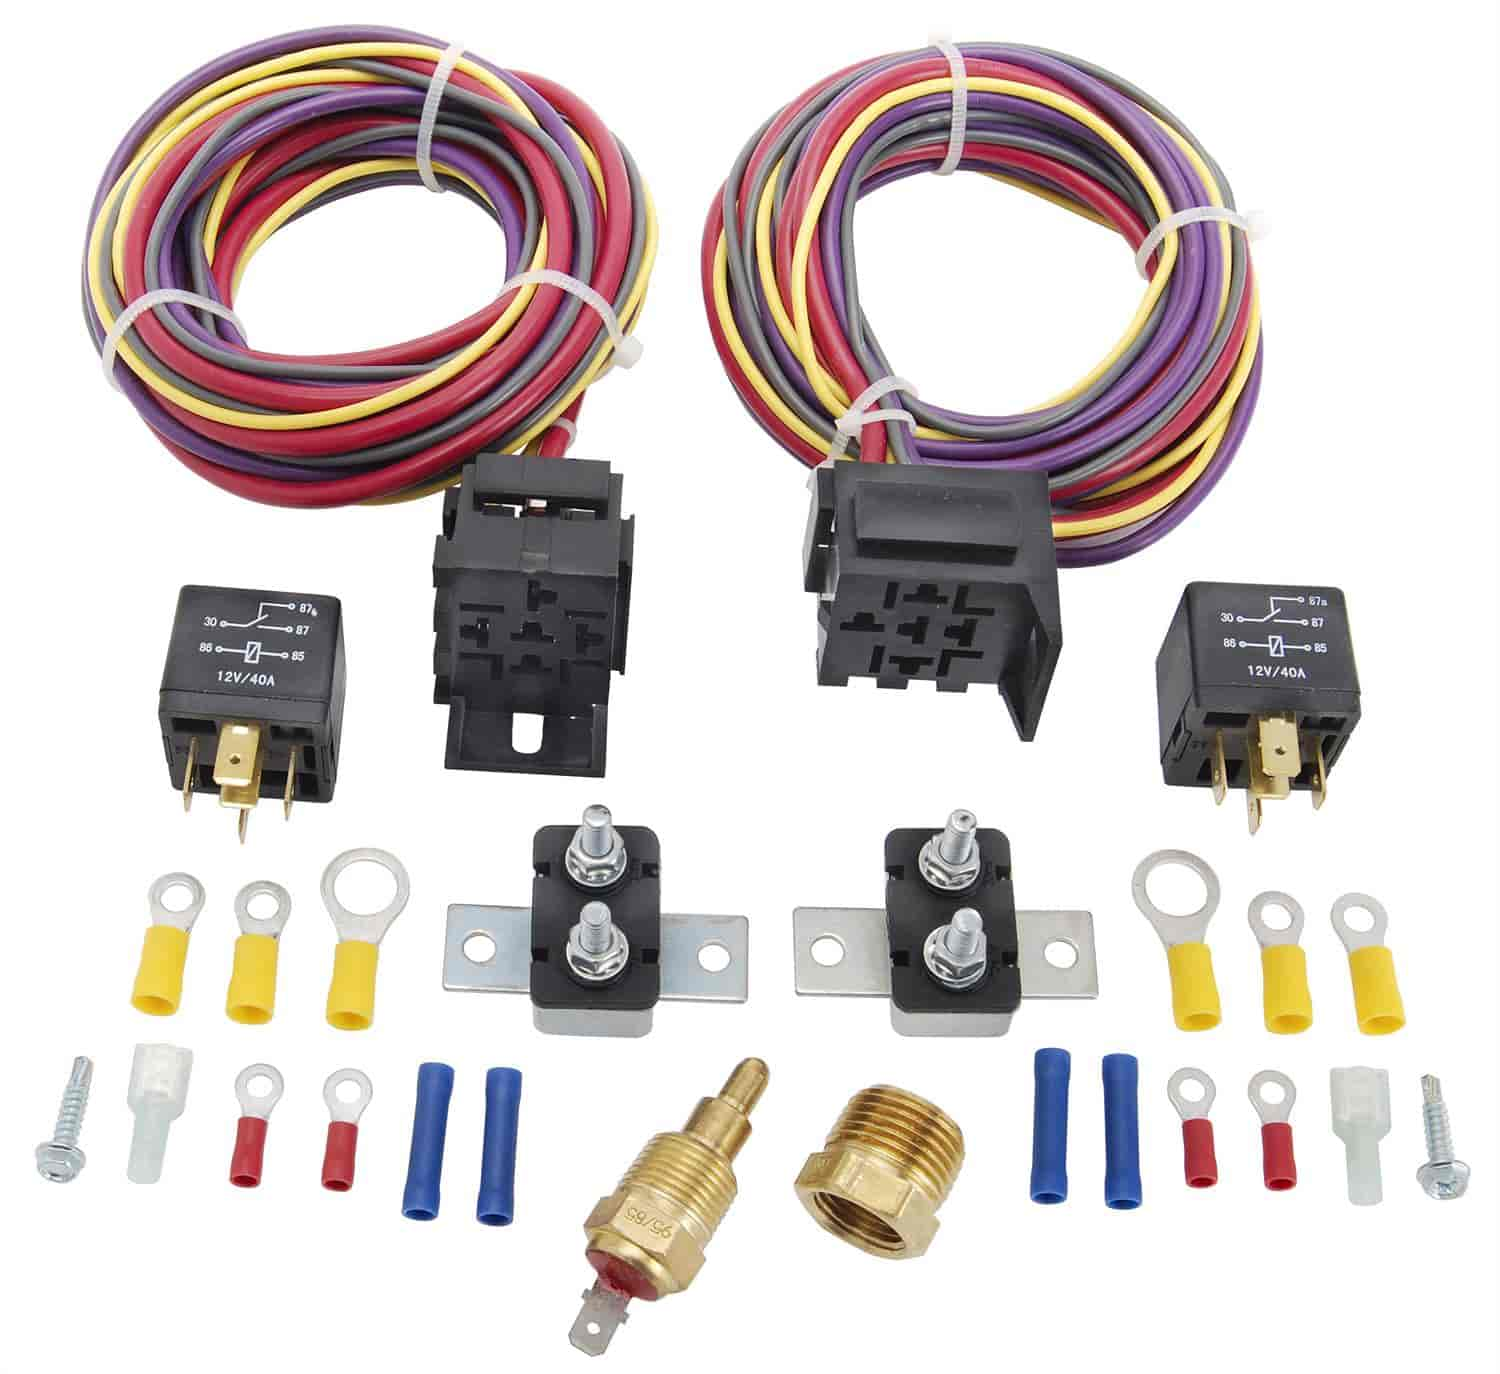 555 10571 jegs performance products 10571 dual fan wiring harness & relay VW Wiring Harness Kits at soozxer.org